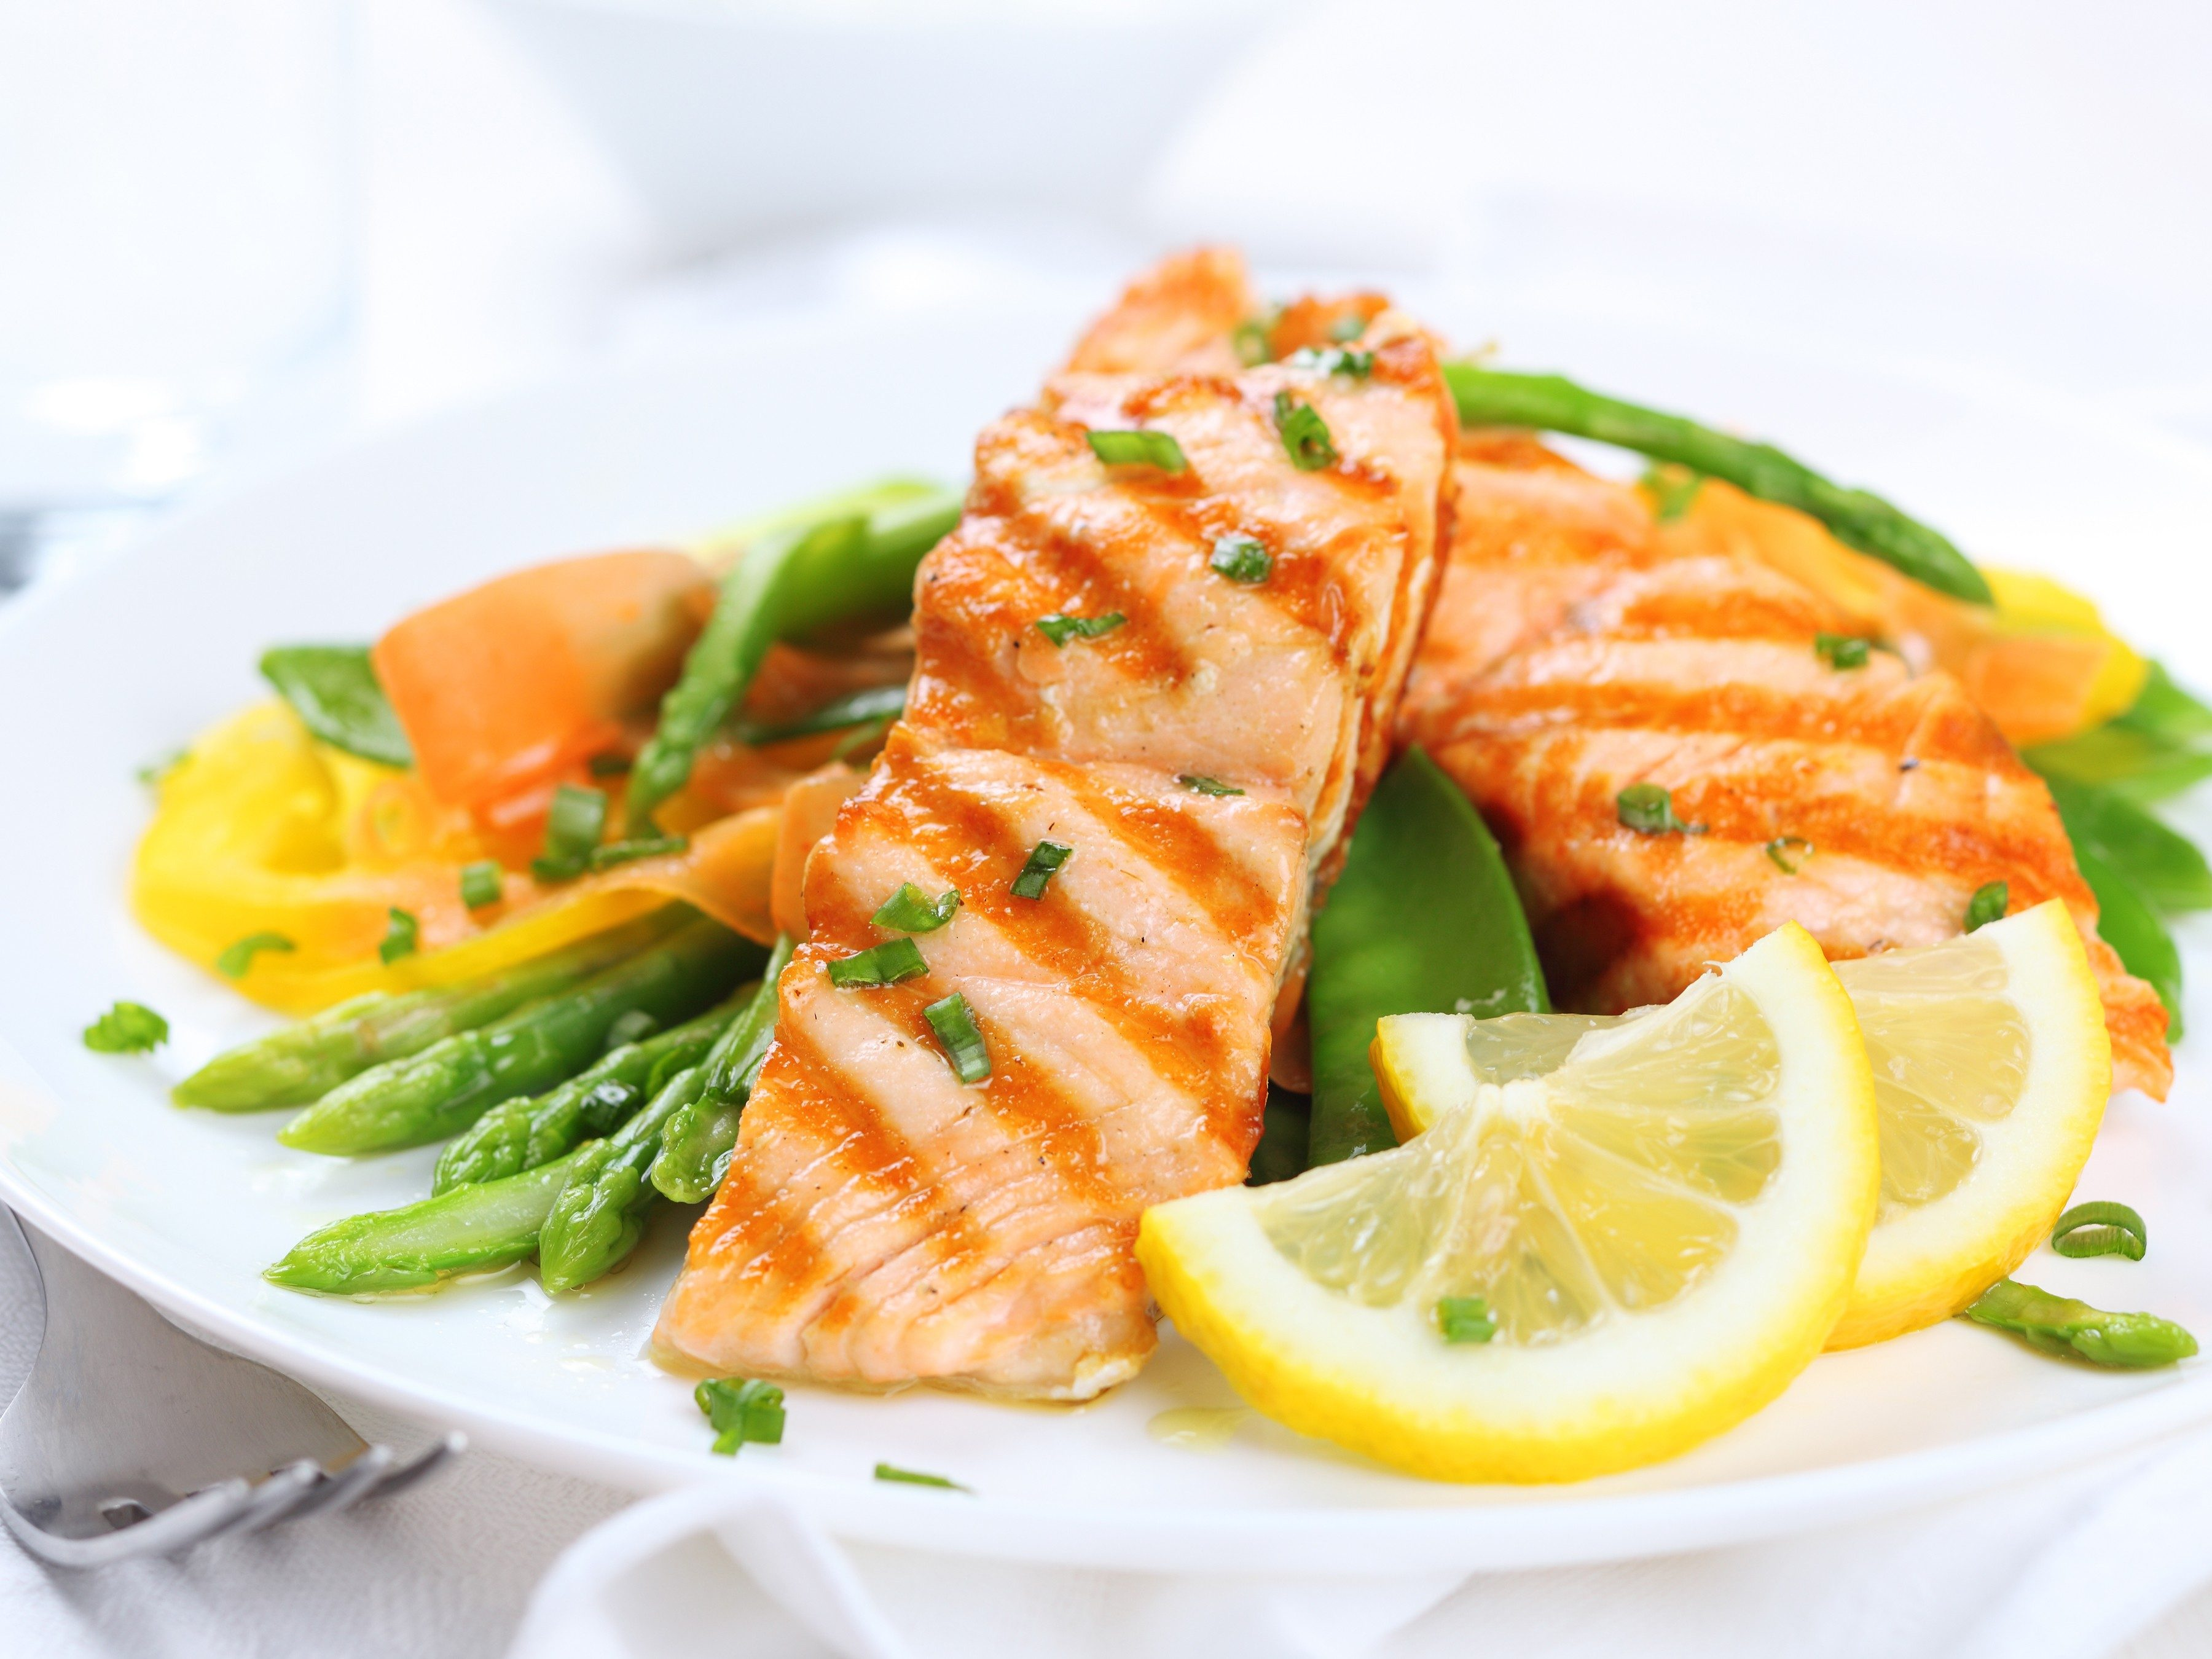 1. Prevent memory loss by eating a brain-healthy diet